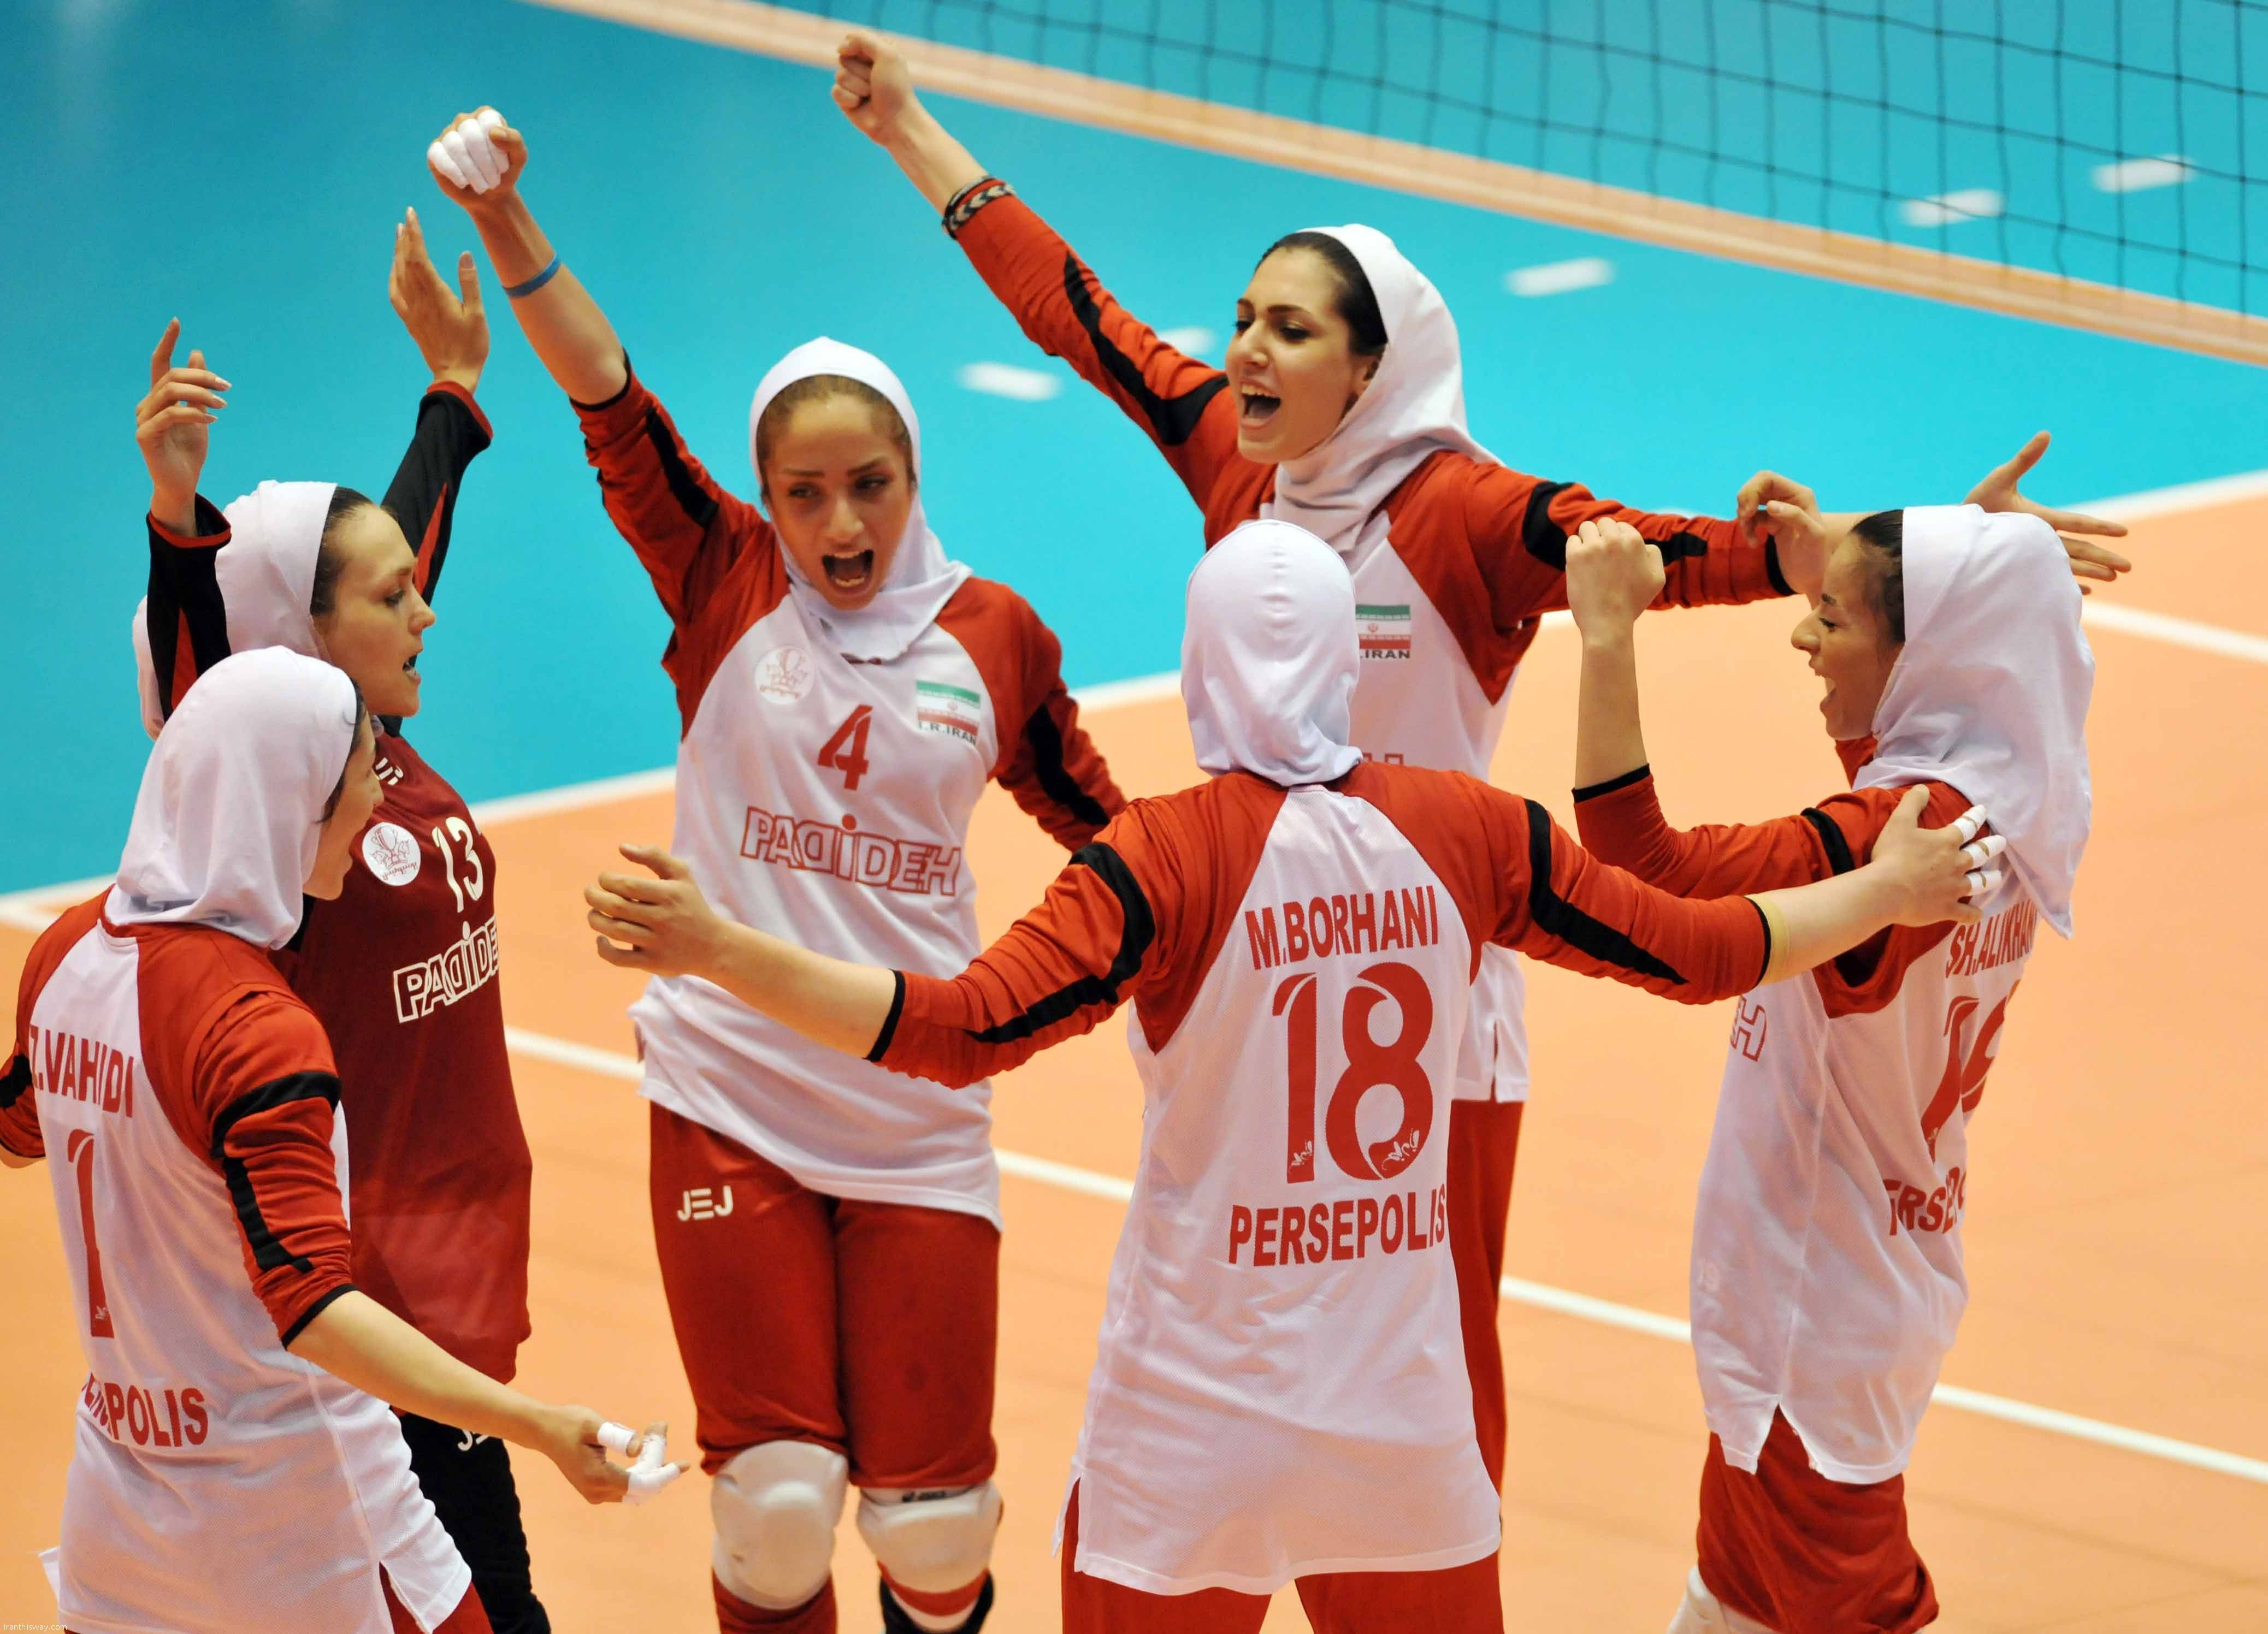 Persian Fasion Iranian Woman Iran S Representatives Have Made A Winning Start To Their Campaign At The 2016 Asian W Iranian Girl Iranian Women Women Volleyball